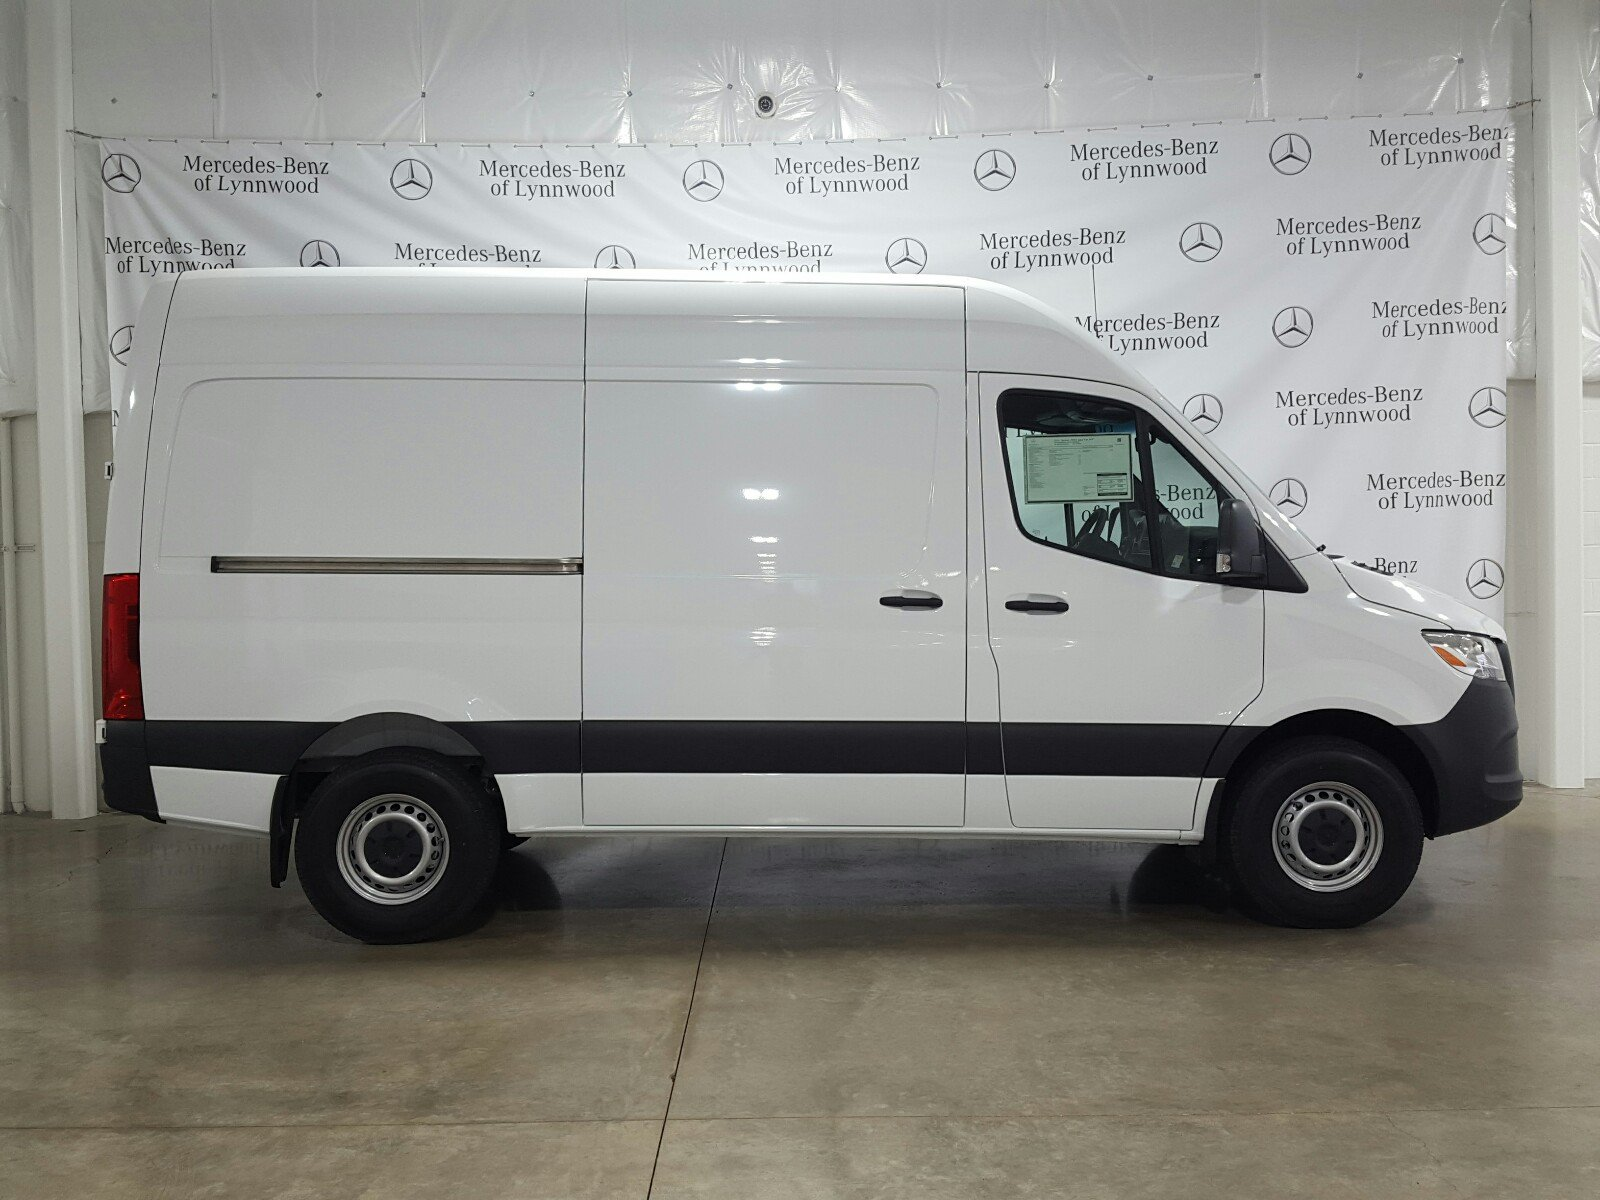 New 2019 Mercedes-Benz Sprinter Cargo Van 2500 High Roof 144 RWD